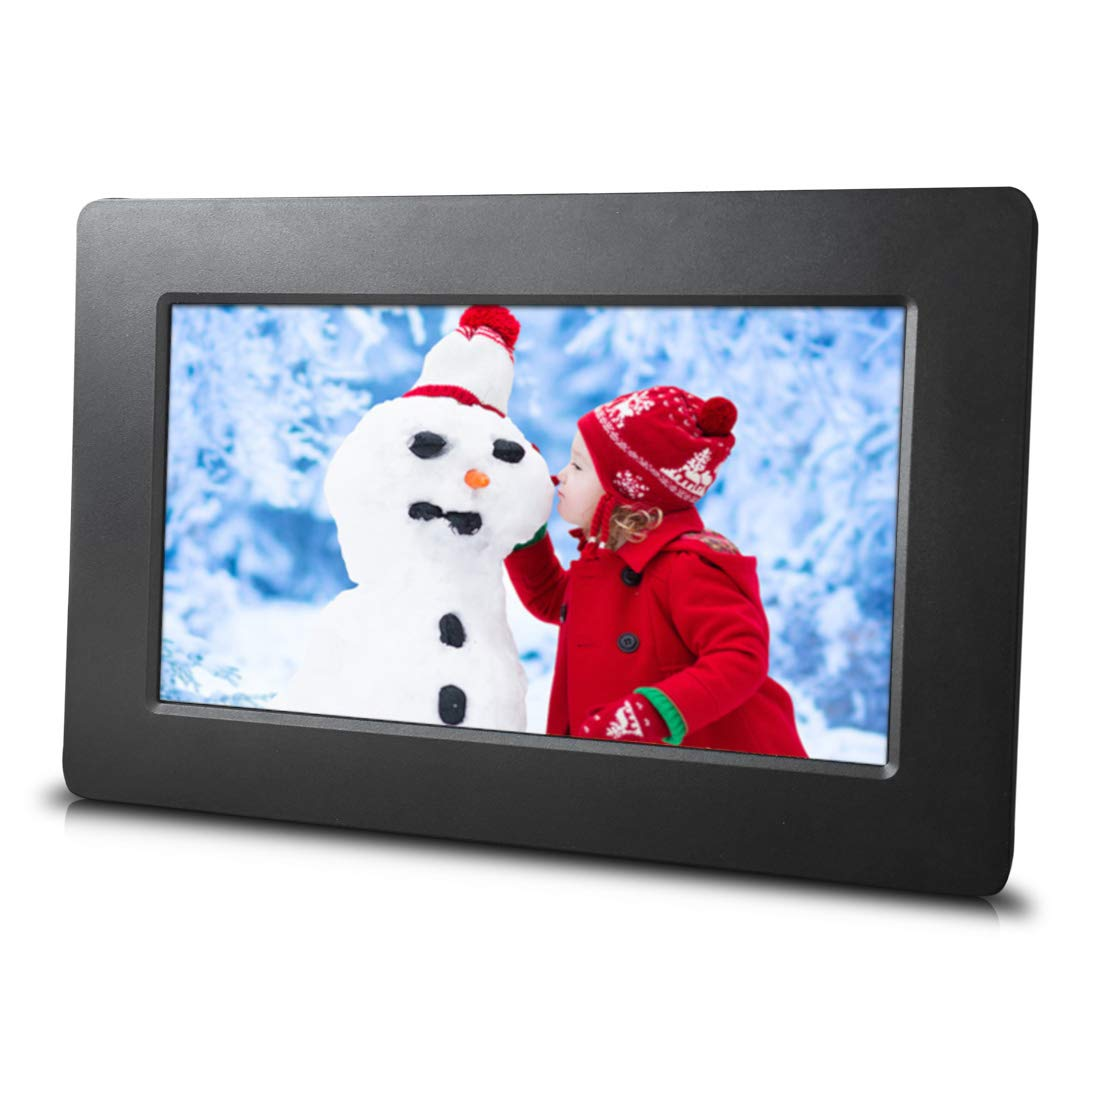 7 inch Digital Picture Frame - Simple to use - HD Screen - USB and SD Card Support - Best Frame for Slideshows